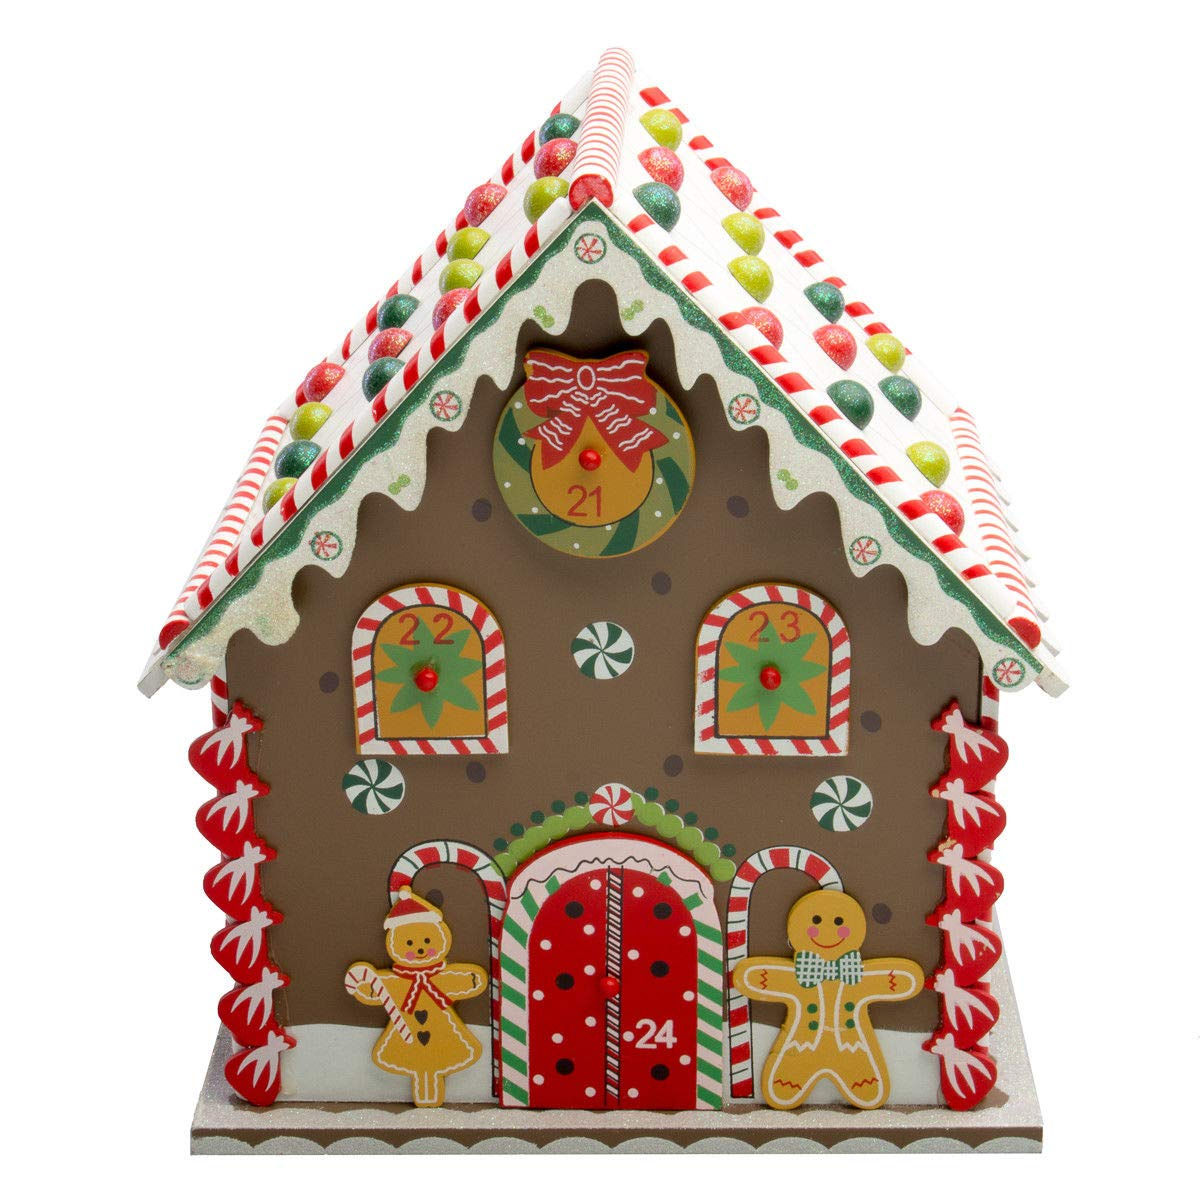 Wooden Gingerbread House Advent Calendar with Drawers Christmas Holiday Reusable